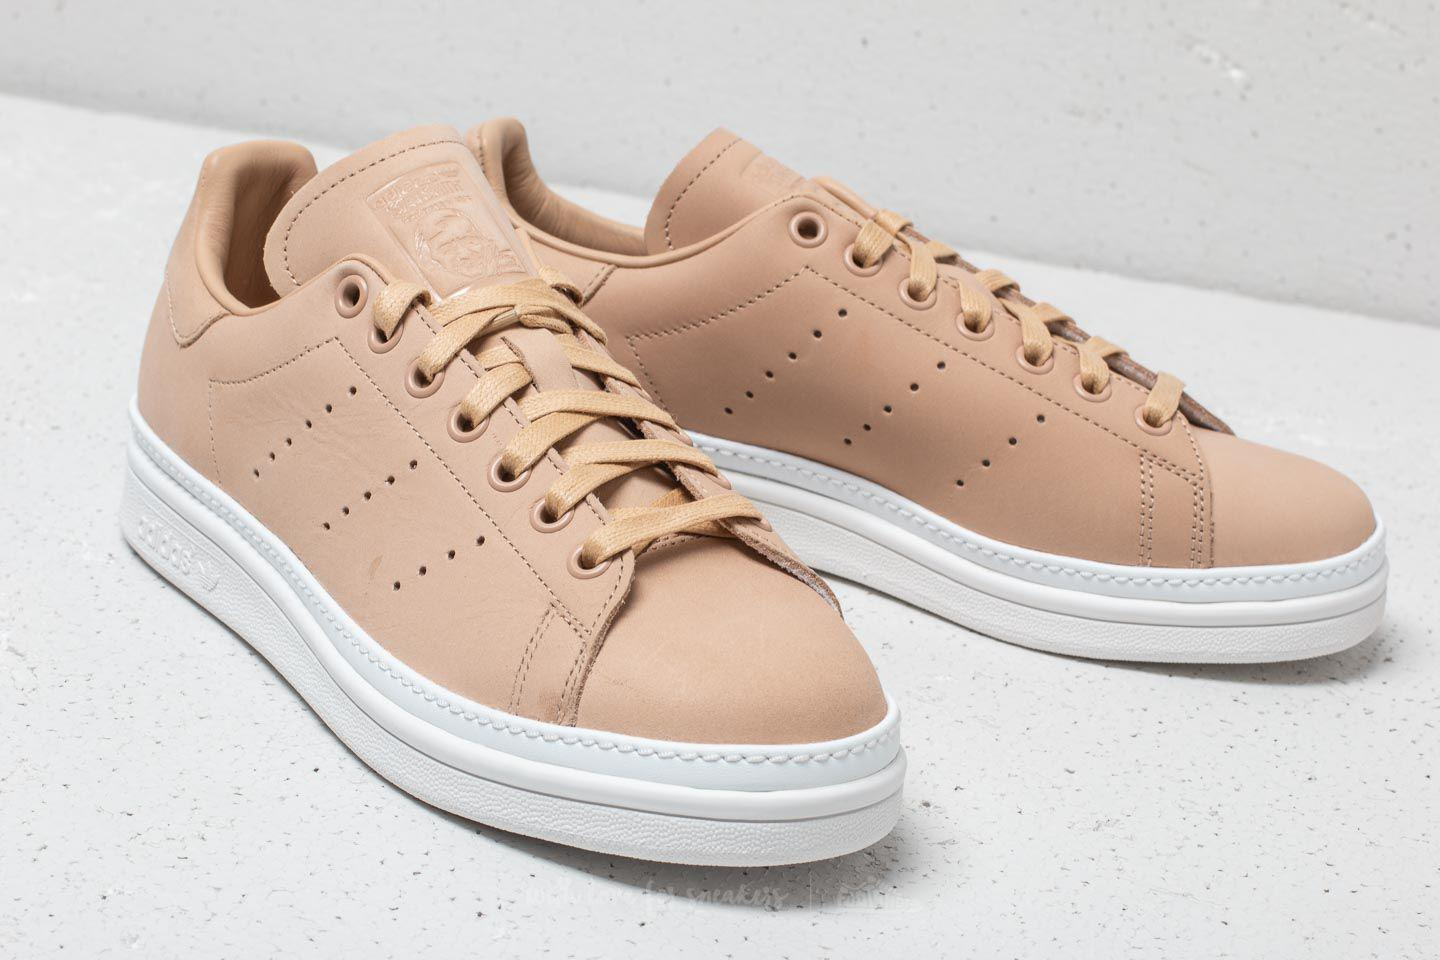 new style a6f0b 67f5d Lyst - adidas Originals Adidas Stan Smith New Bold W St Pale Nude ...